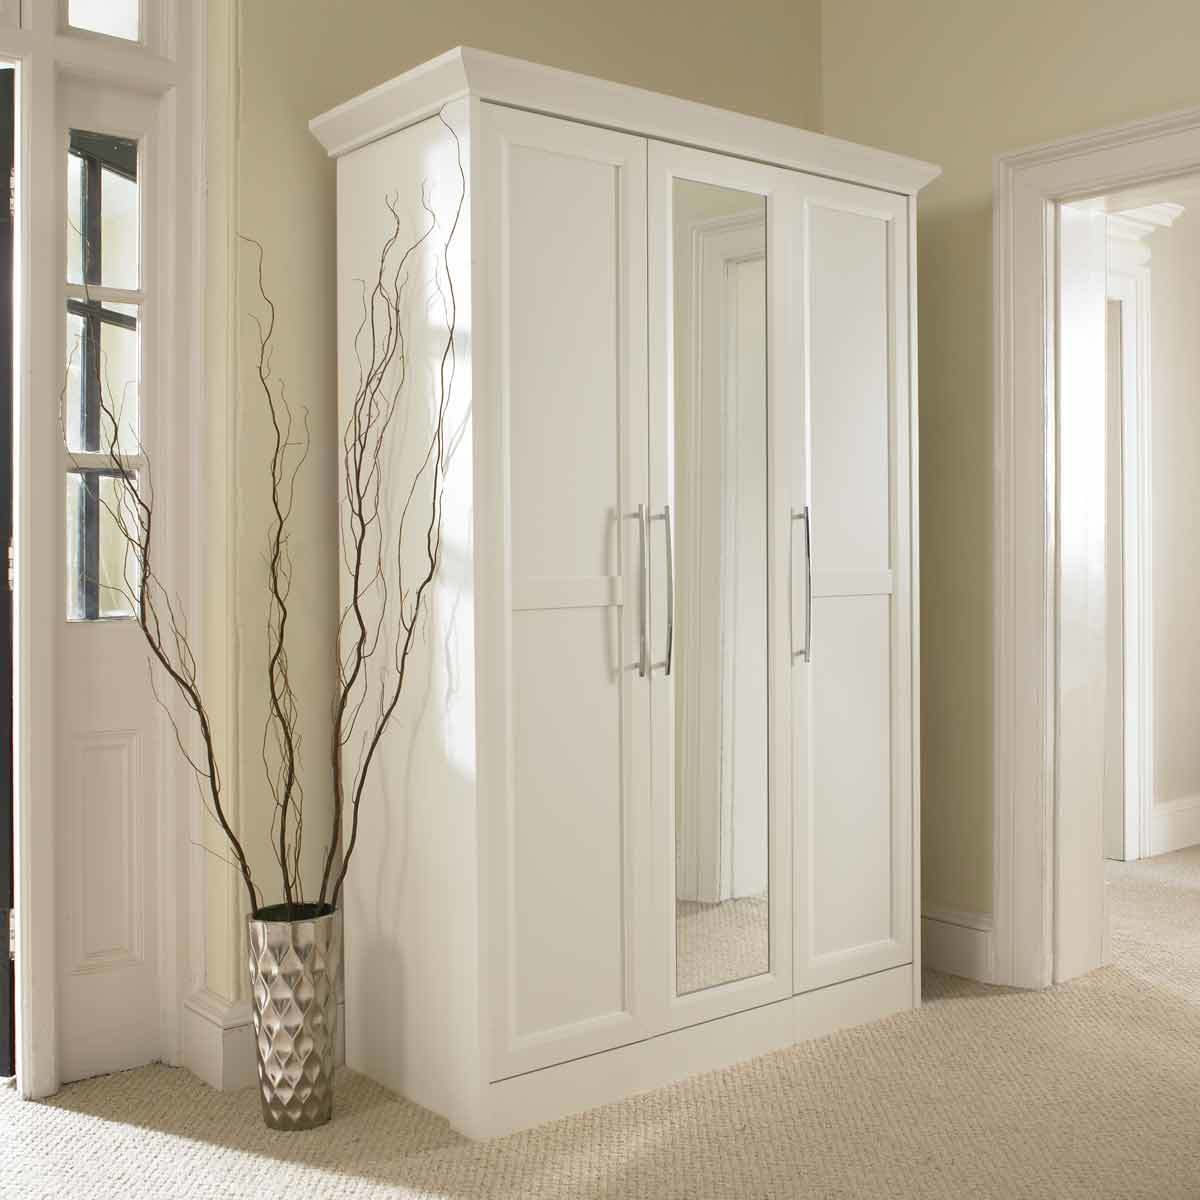 Choose From A Wide Range Of Wardrobes In Dubai And Across The UAE